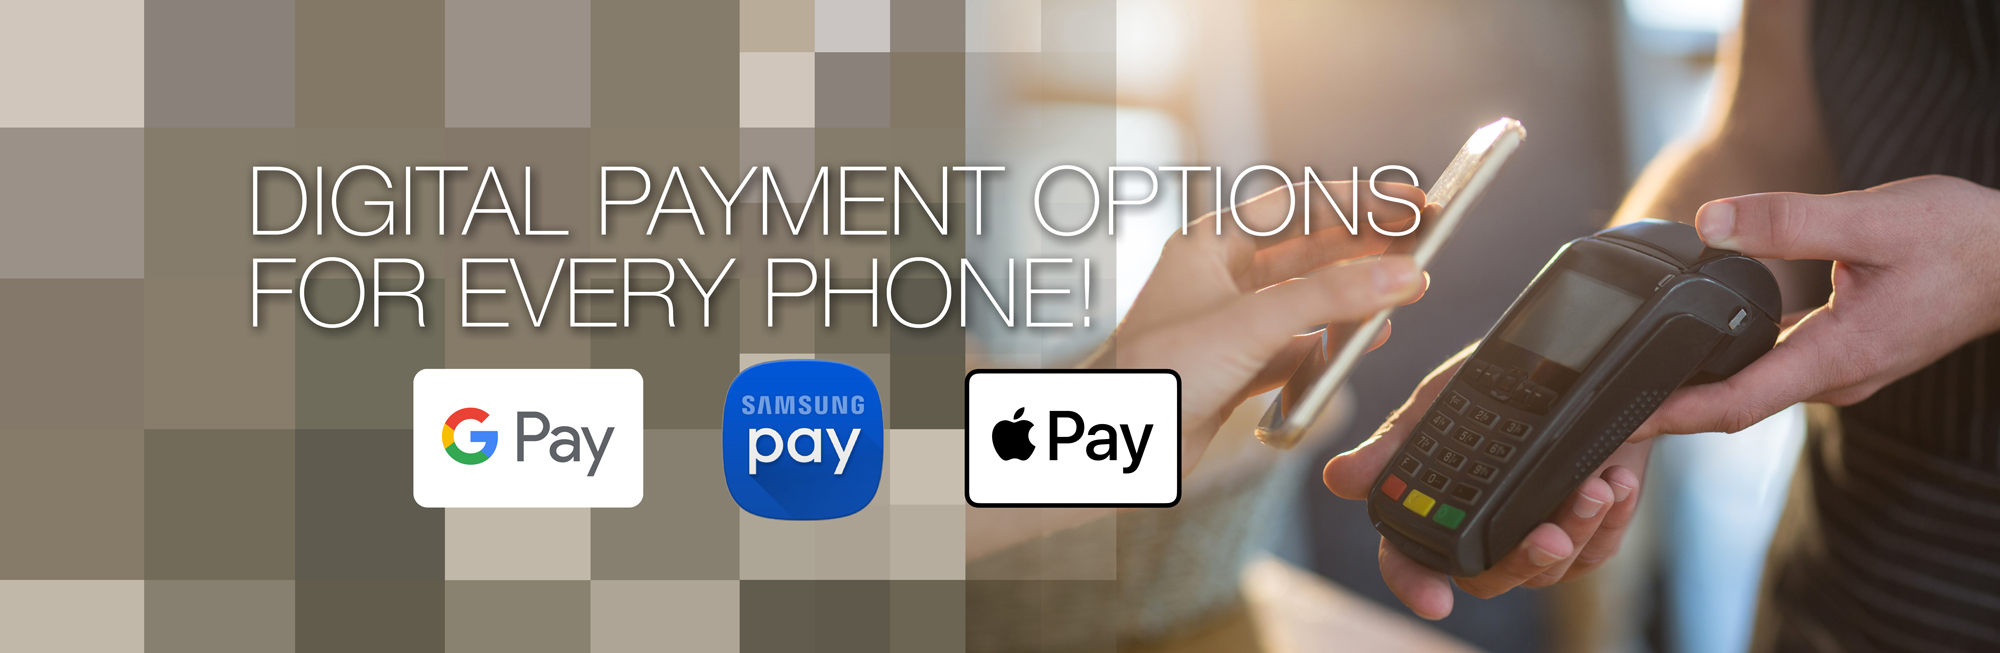 Digital Payment Options For Every Phone!